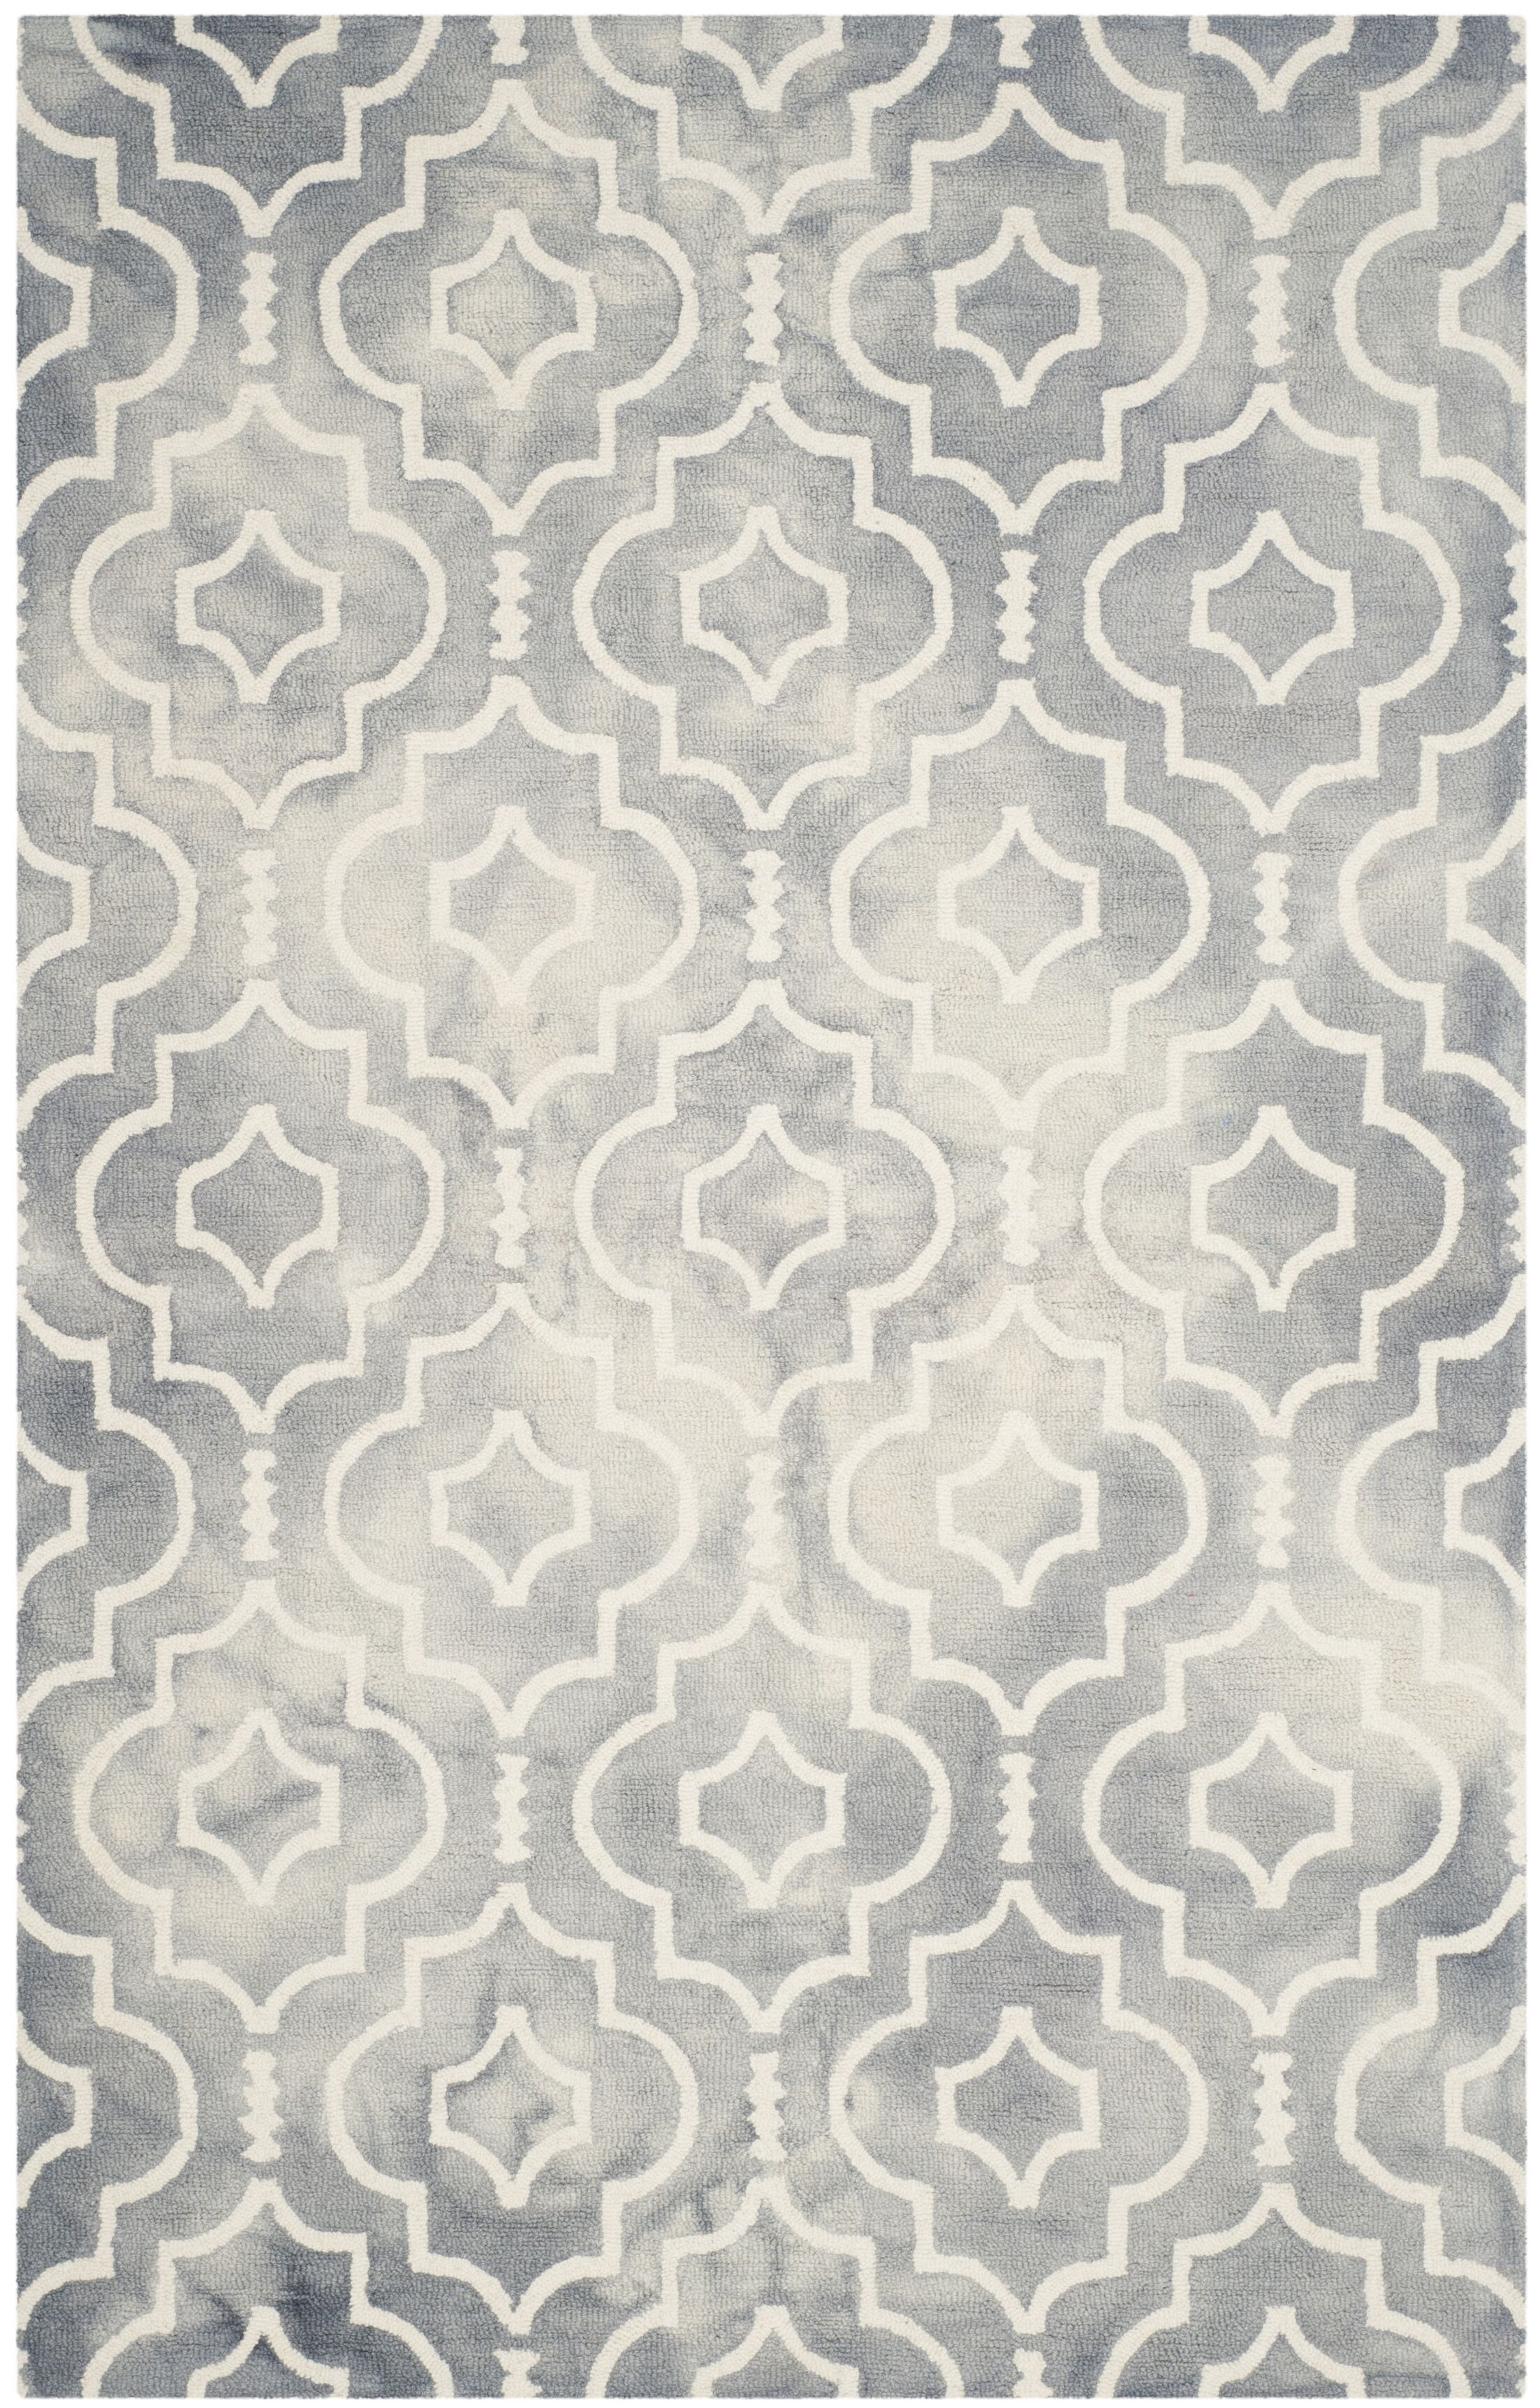 Berman Dip Dye Gray/Ivory Area Rug Rug Size: Rectangle 6' x 9'